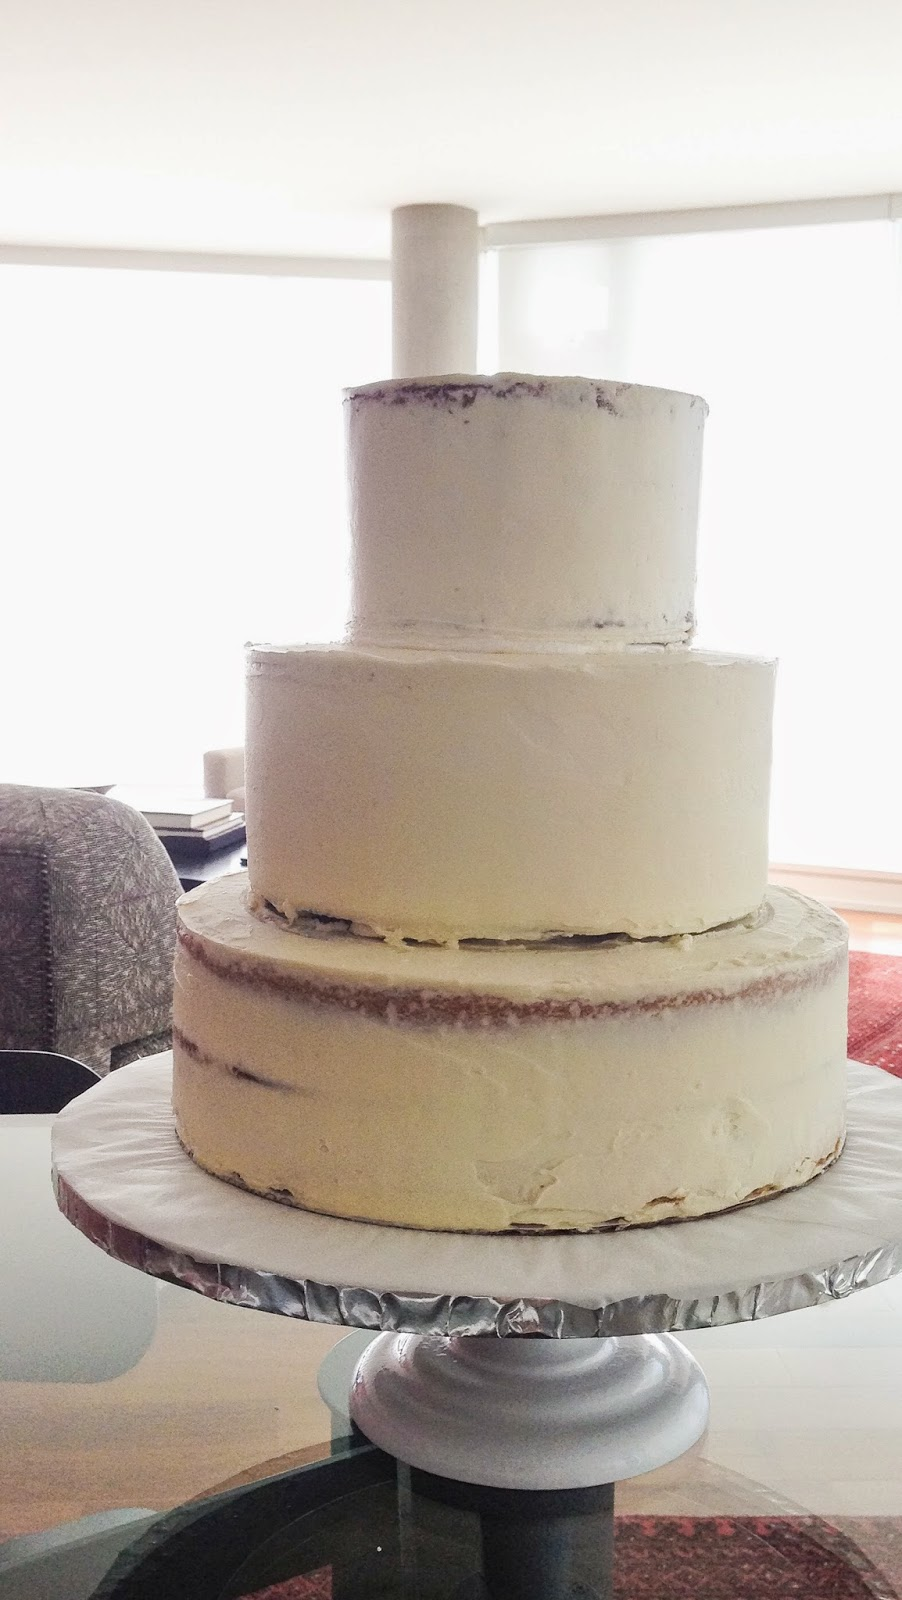 Dowels Or Bubble Tea Straws Are Placed In The Cake To Support Layer Above It This Is Crucial For Travel Stacked A 3 8 Centre Dowel Must